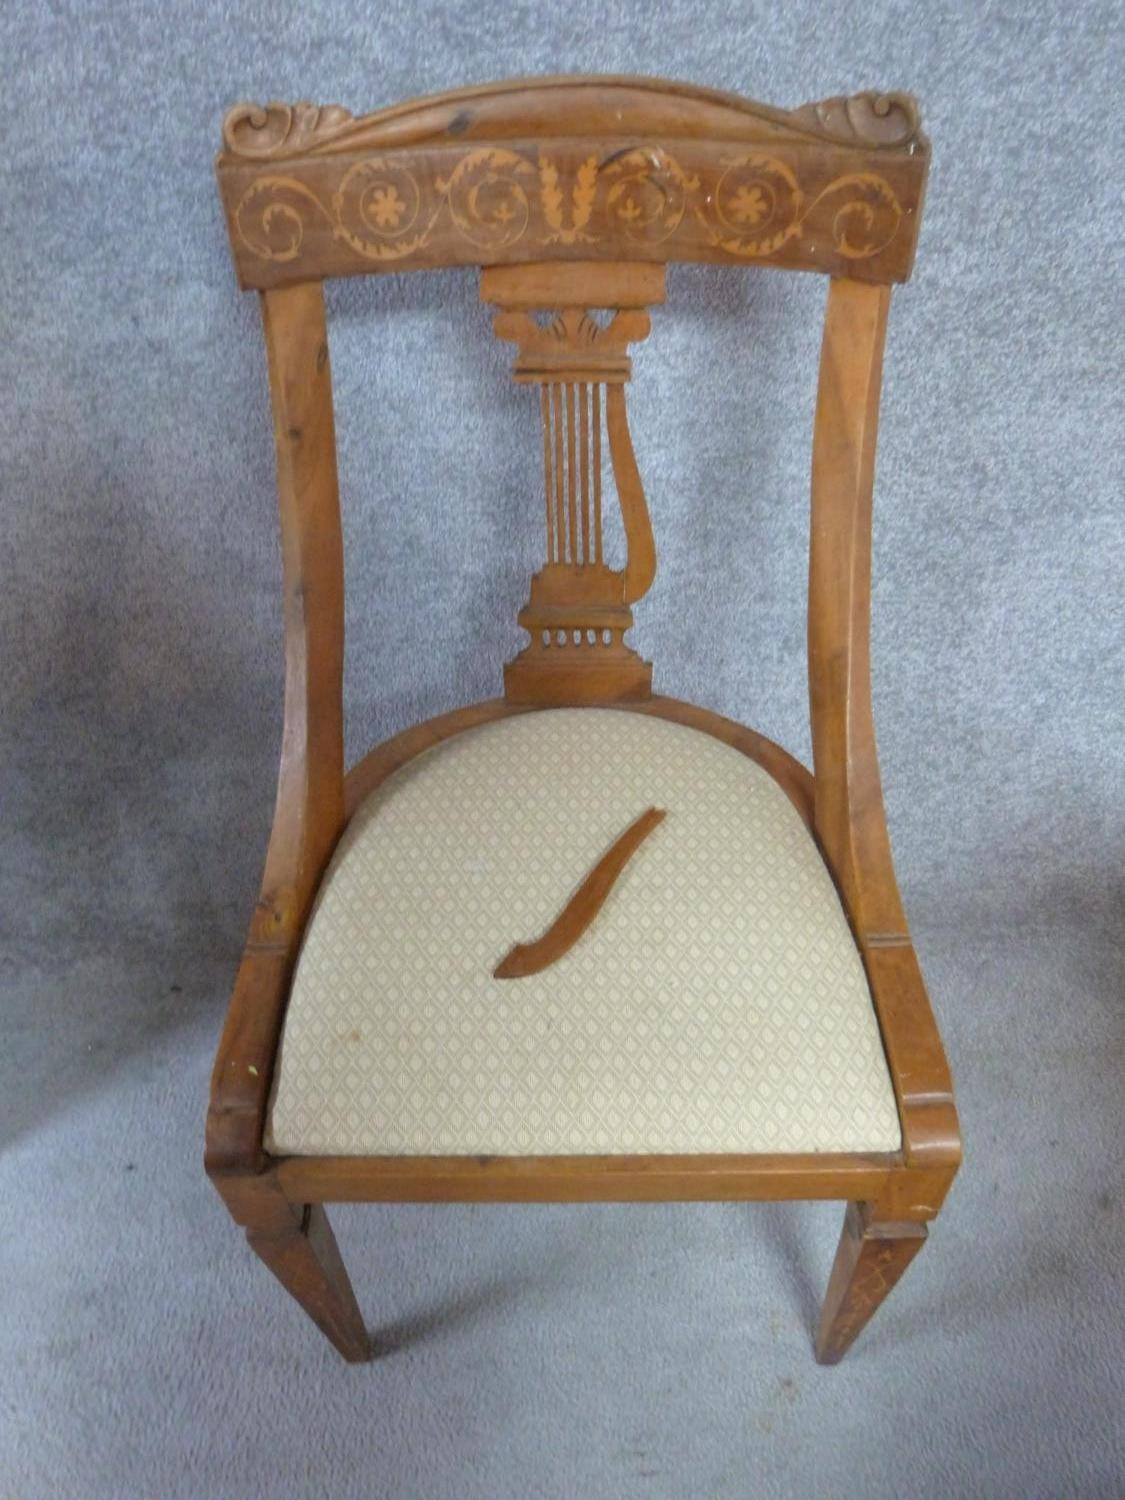 Lot 2 - A set of four 19th century Continental walnut and satinwood inlaid chairs, lyre shaped backs on